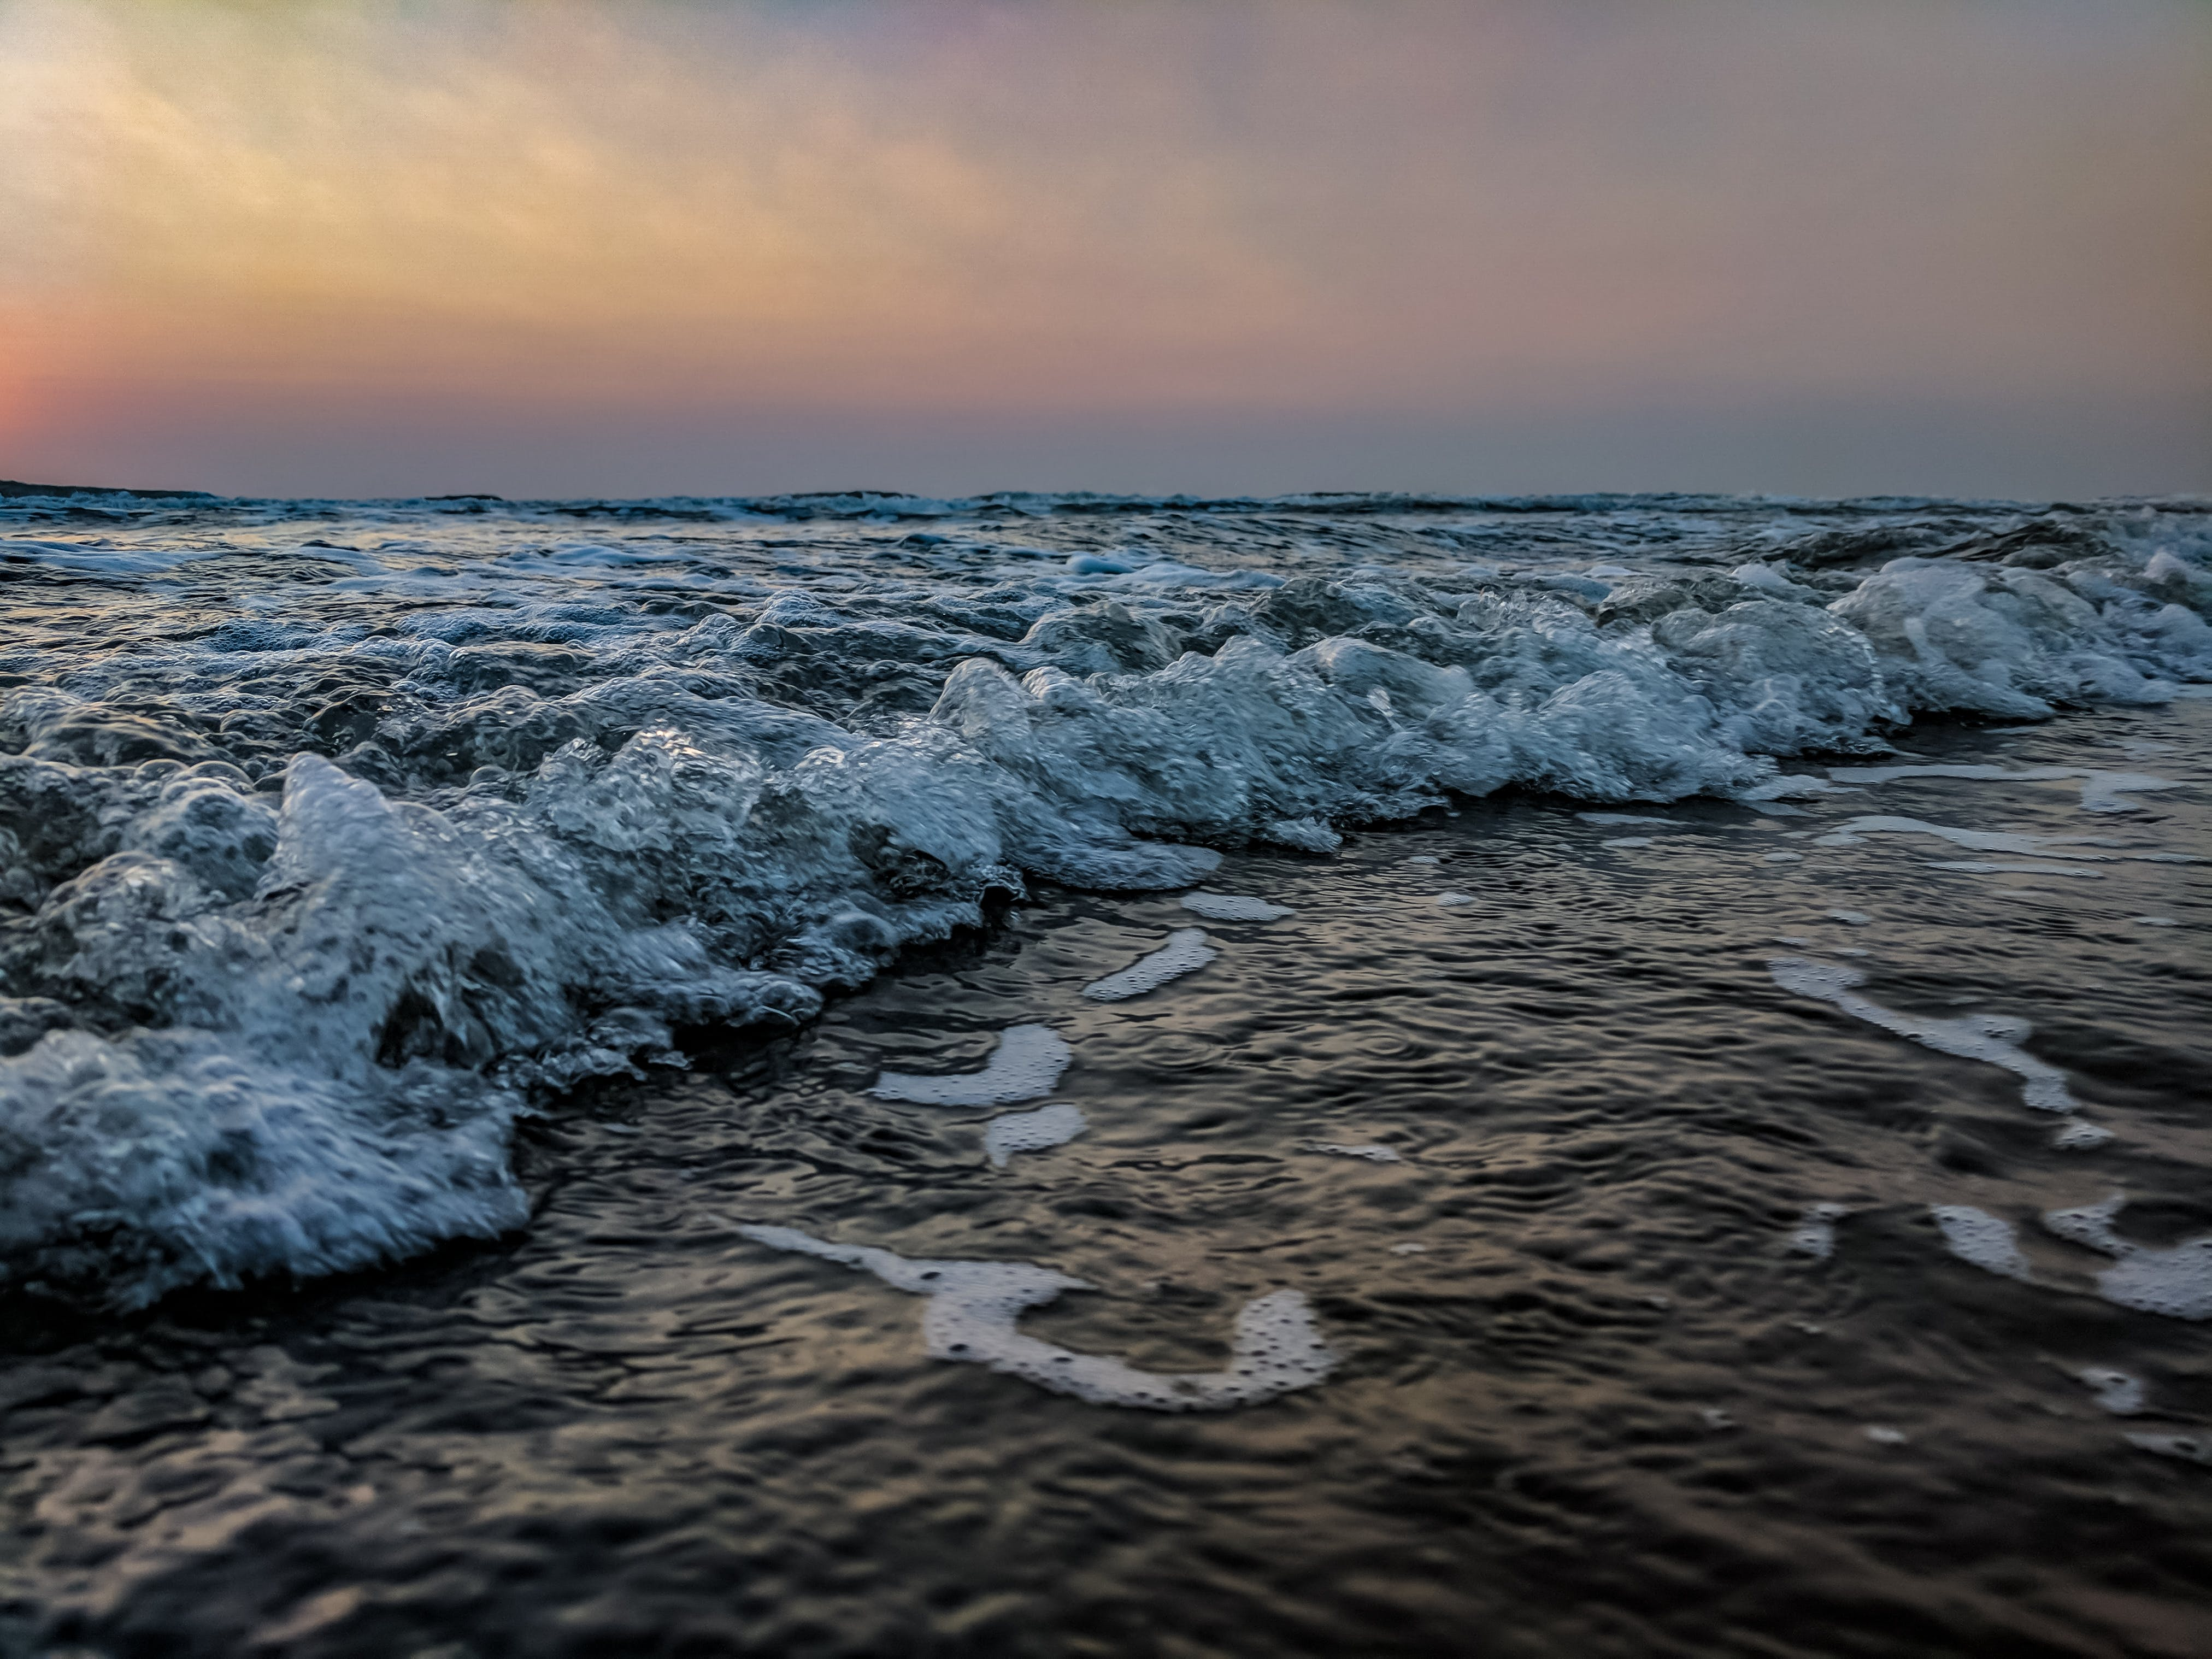 Landscape Photo of Waves